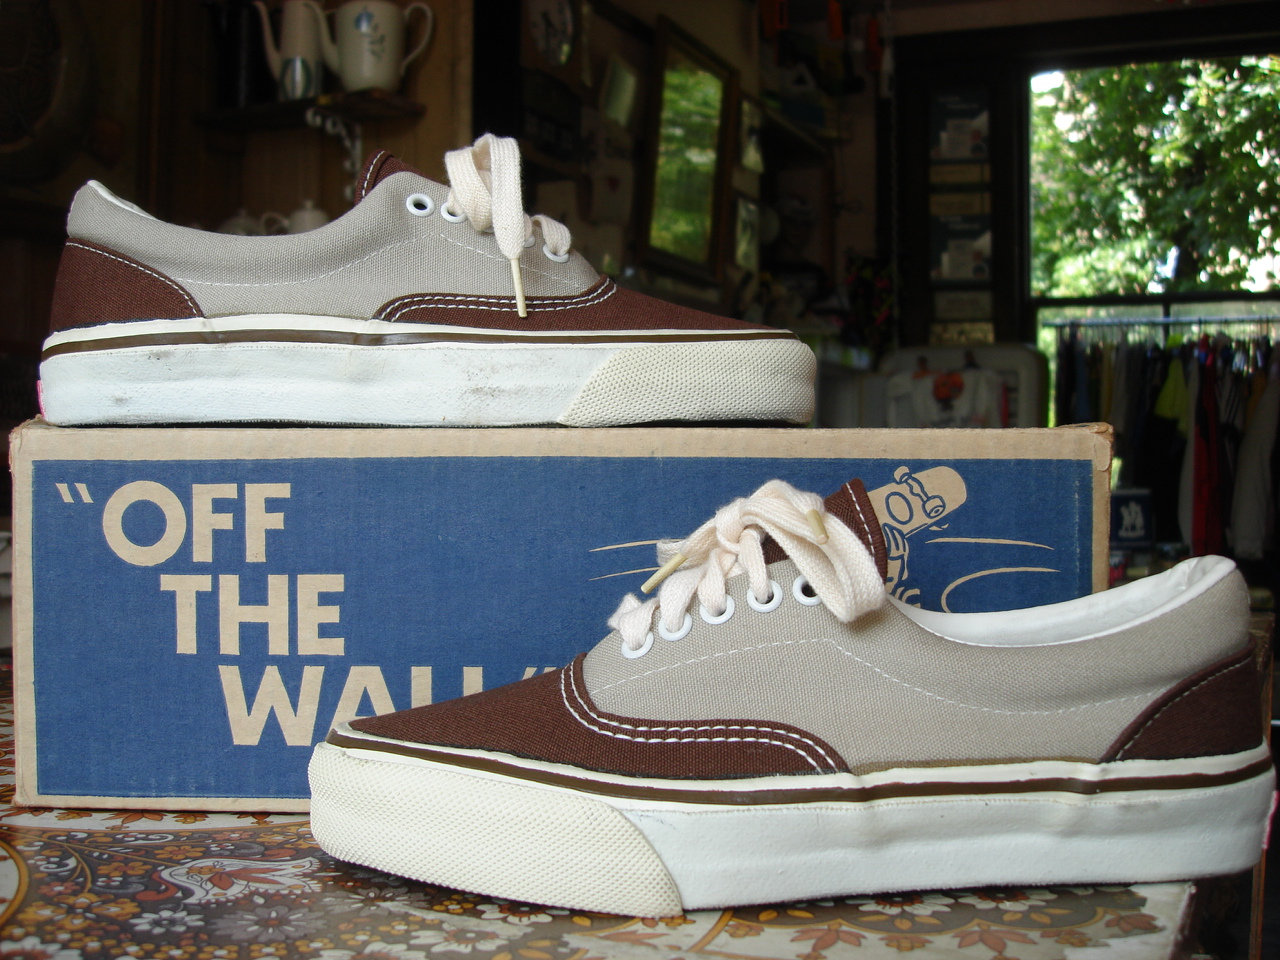 a3af04a293 vintage vans style  95 era 2-tone brown grey brown canvas made in usa circa  1979 new in box. US7 UK6-6.5